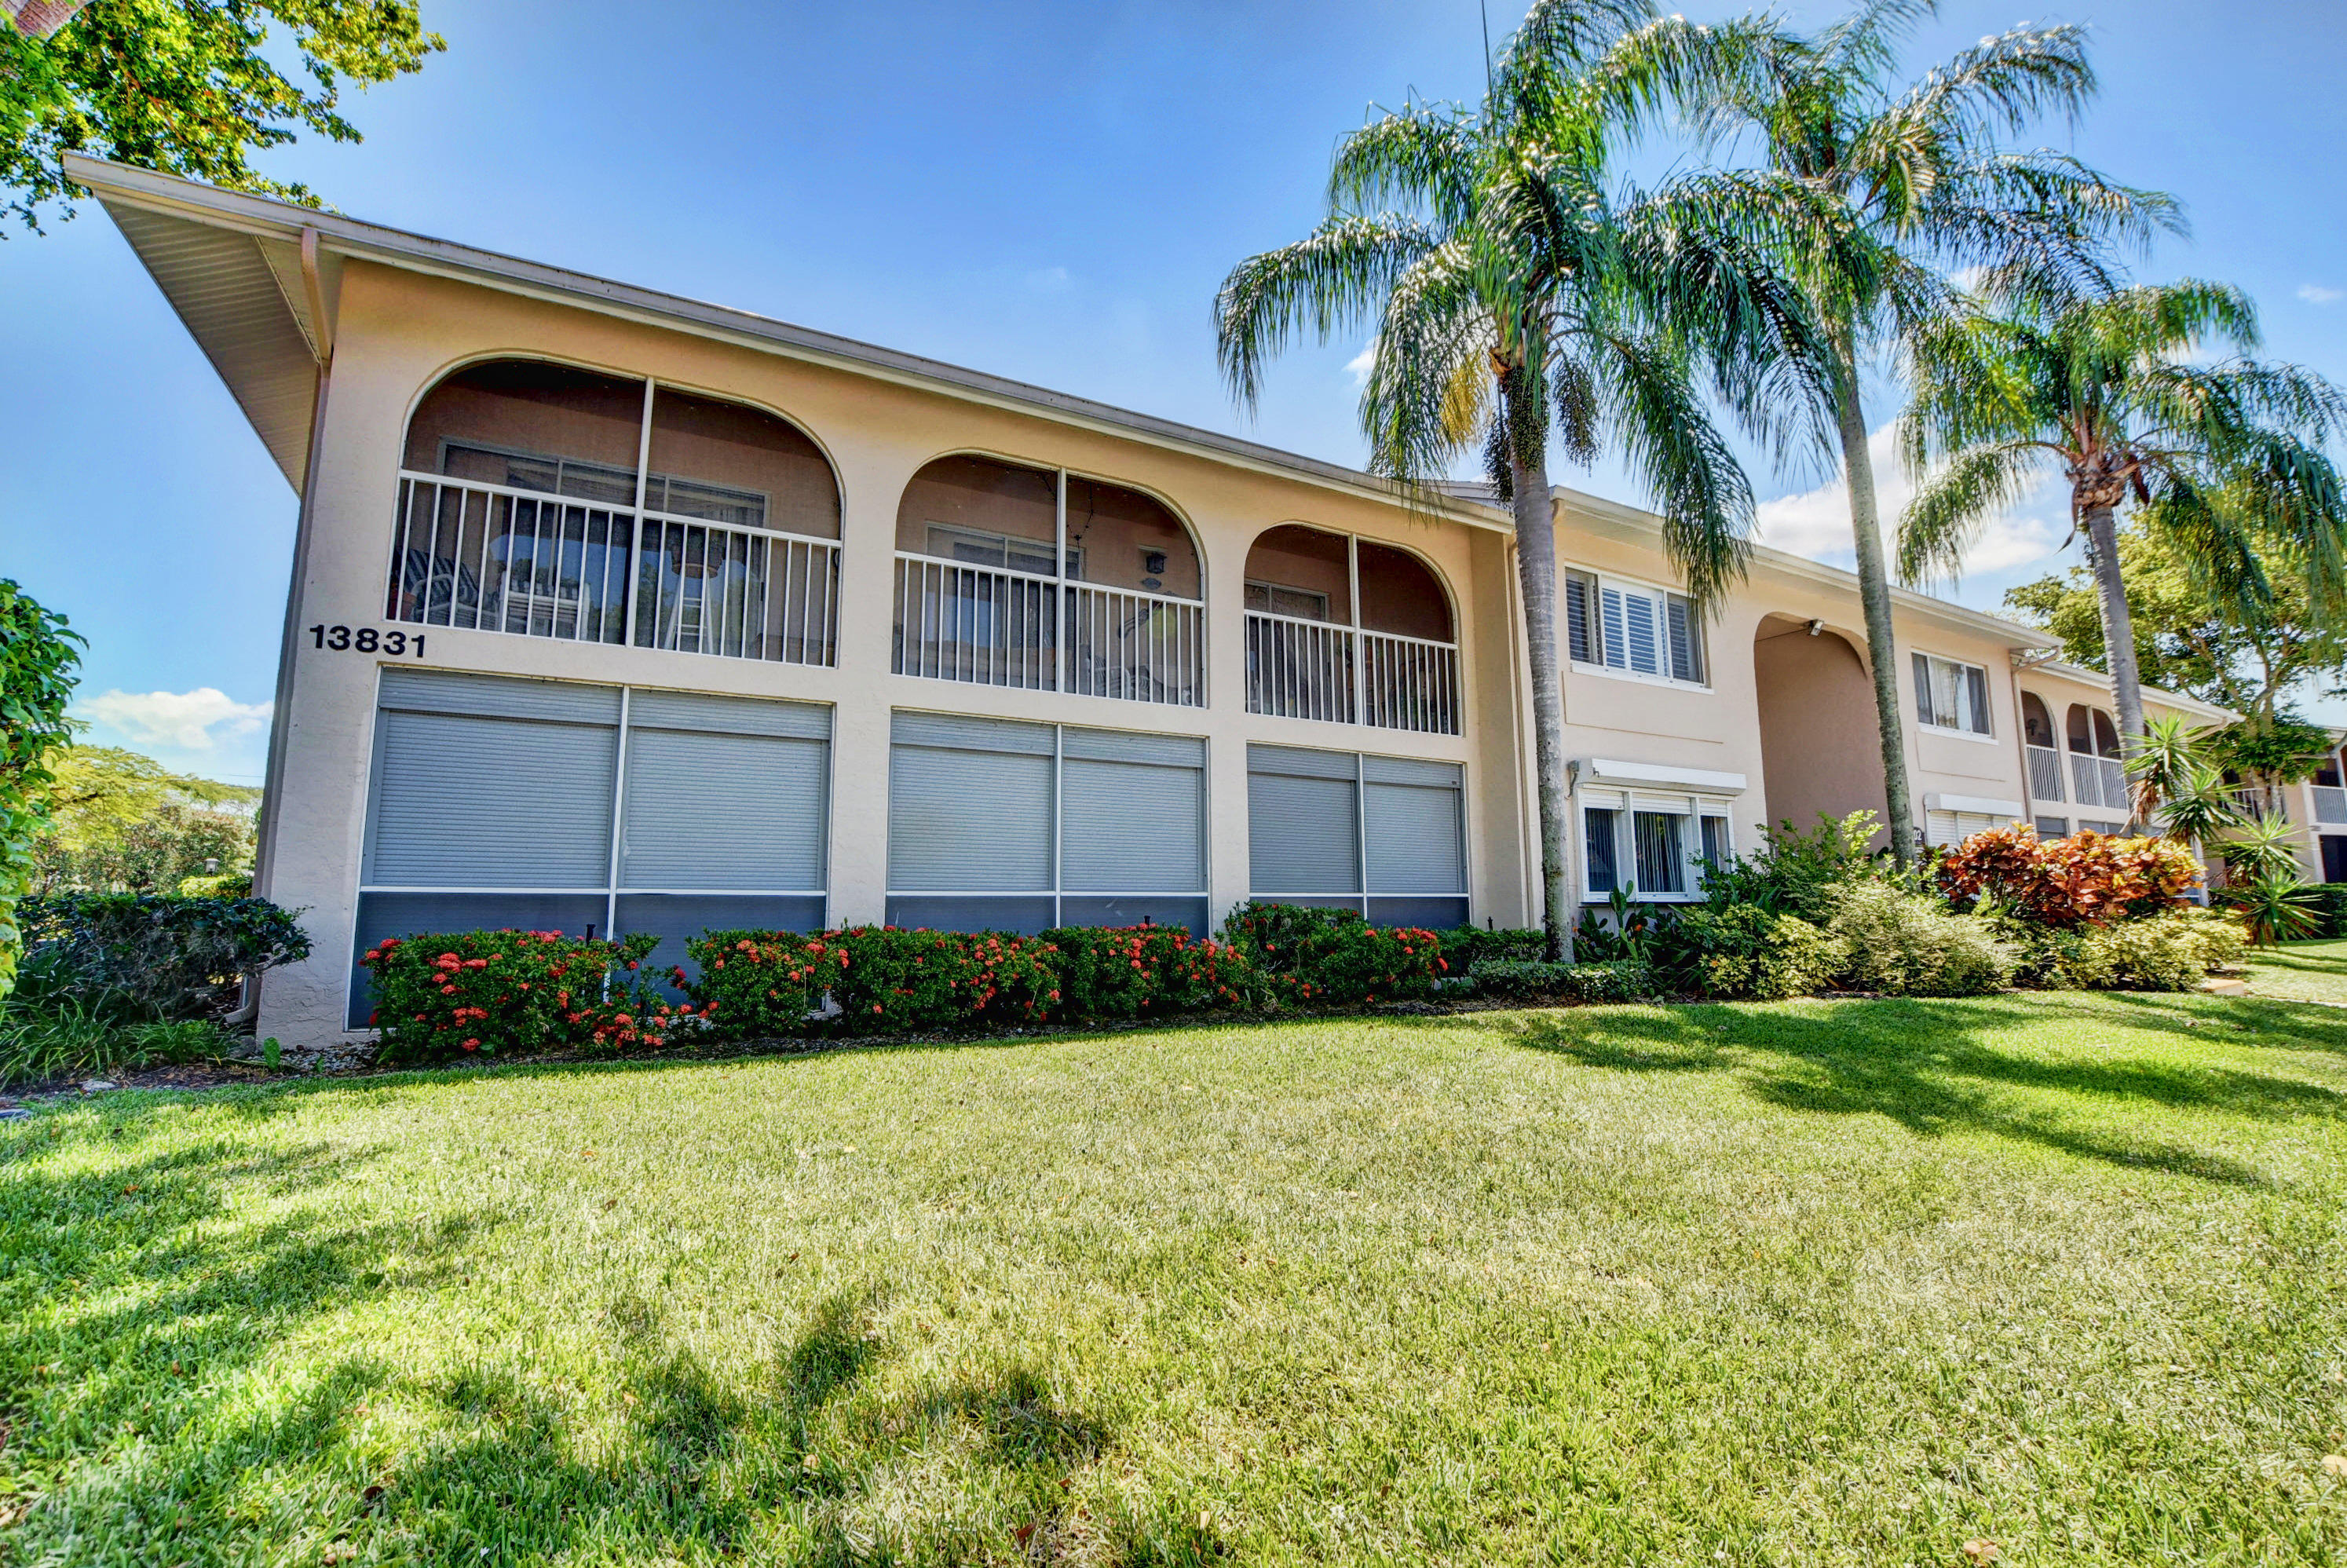 Home for sale in Pine Ridge Delray Beach Florida